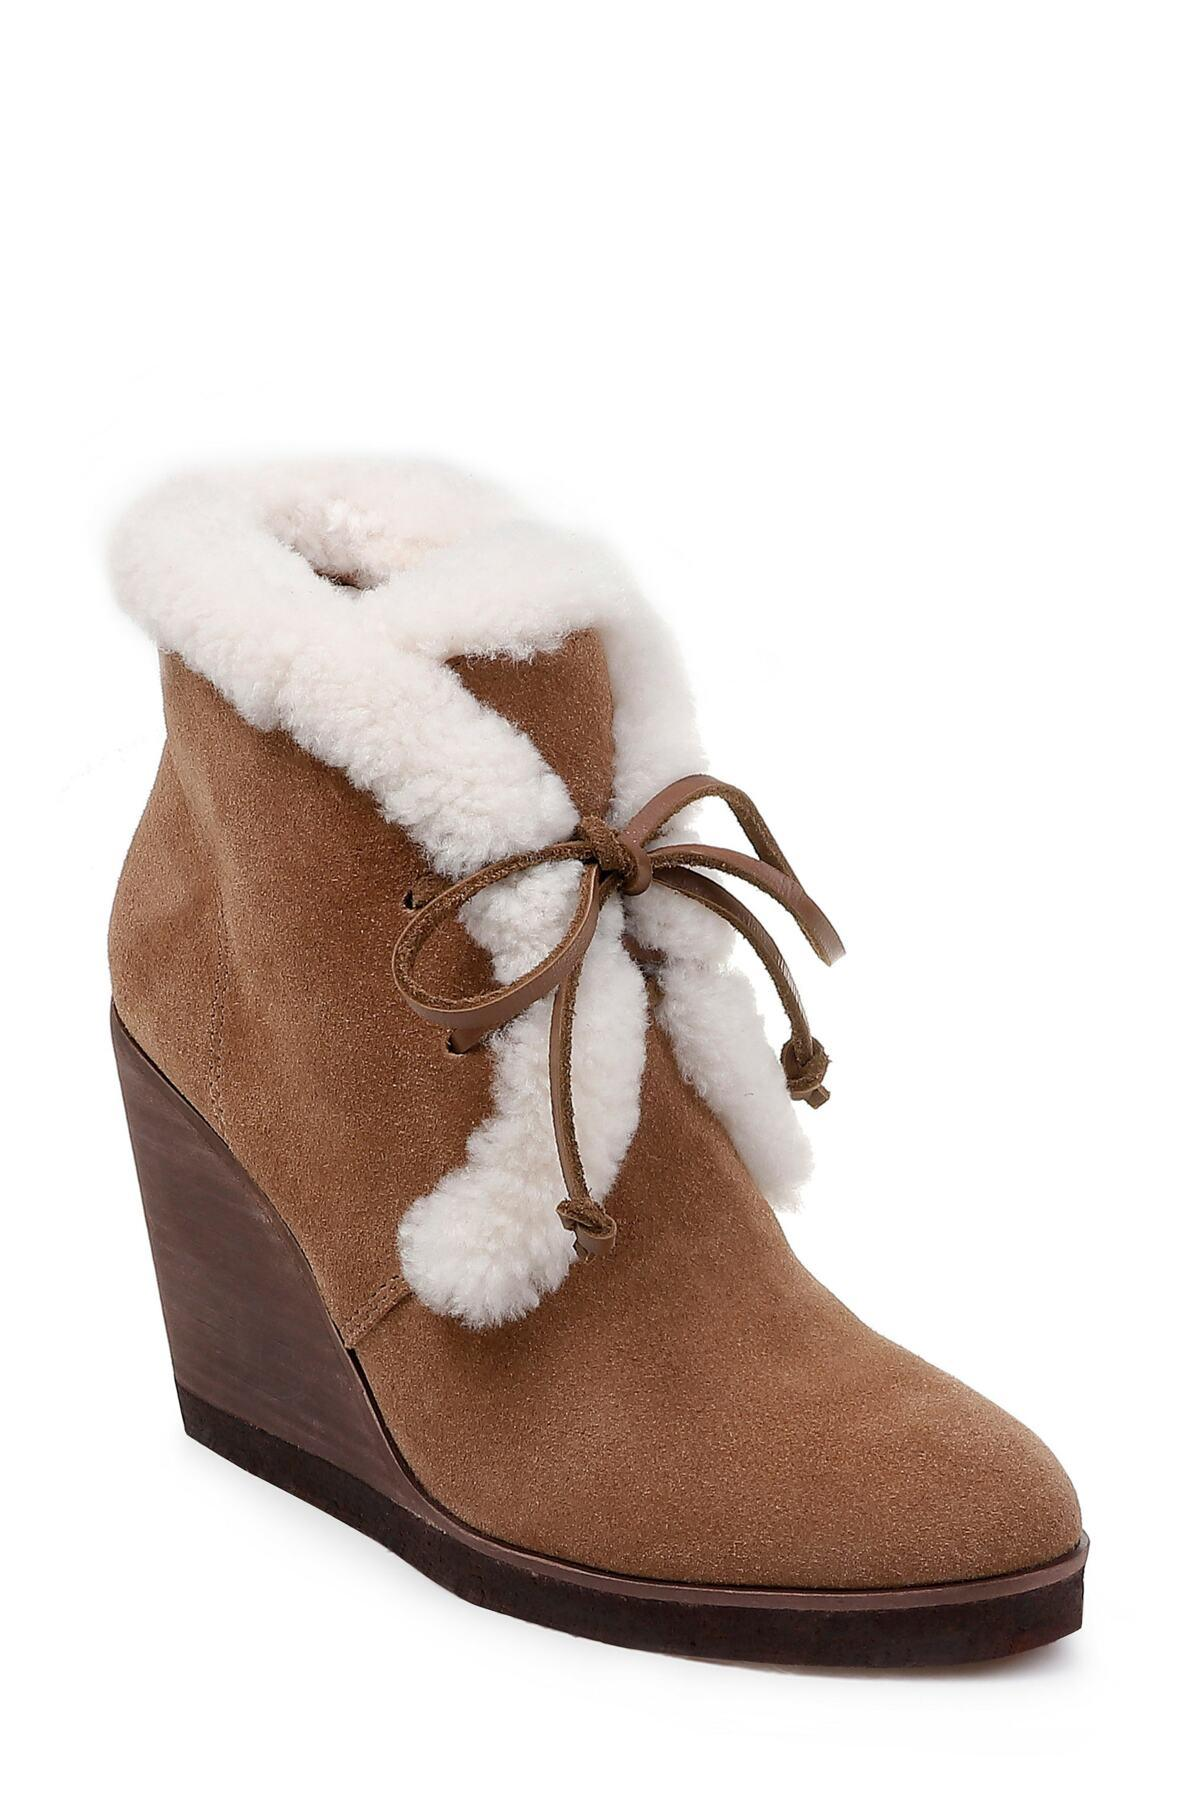 bd9920788c80 Lyst - Splendid Women s Catalina Suede   Shearling Lace Up Wedge ...